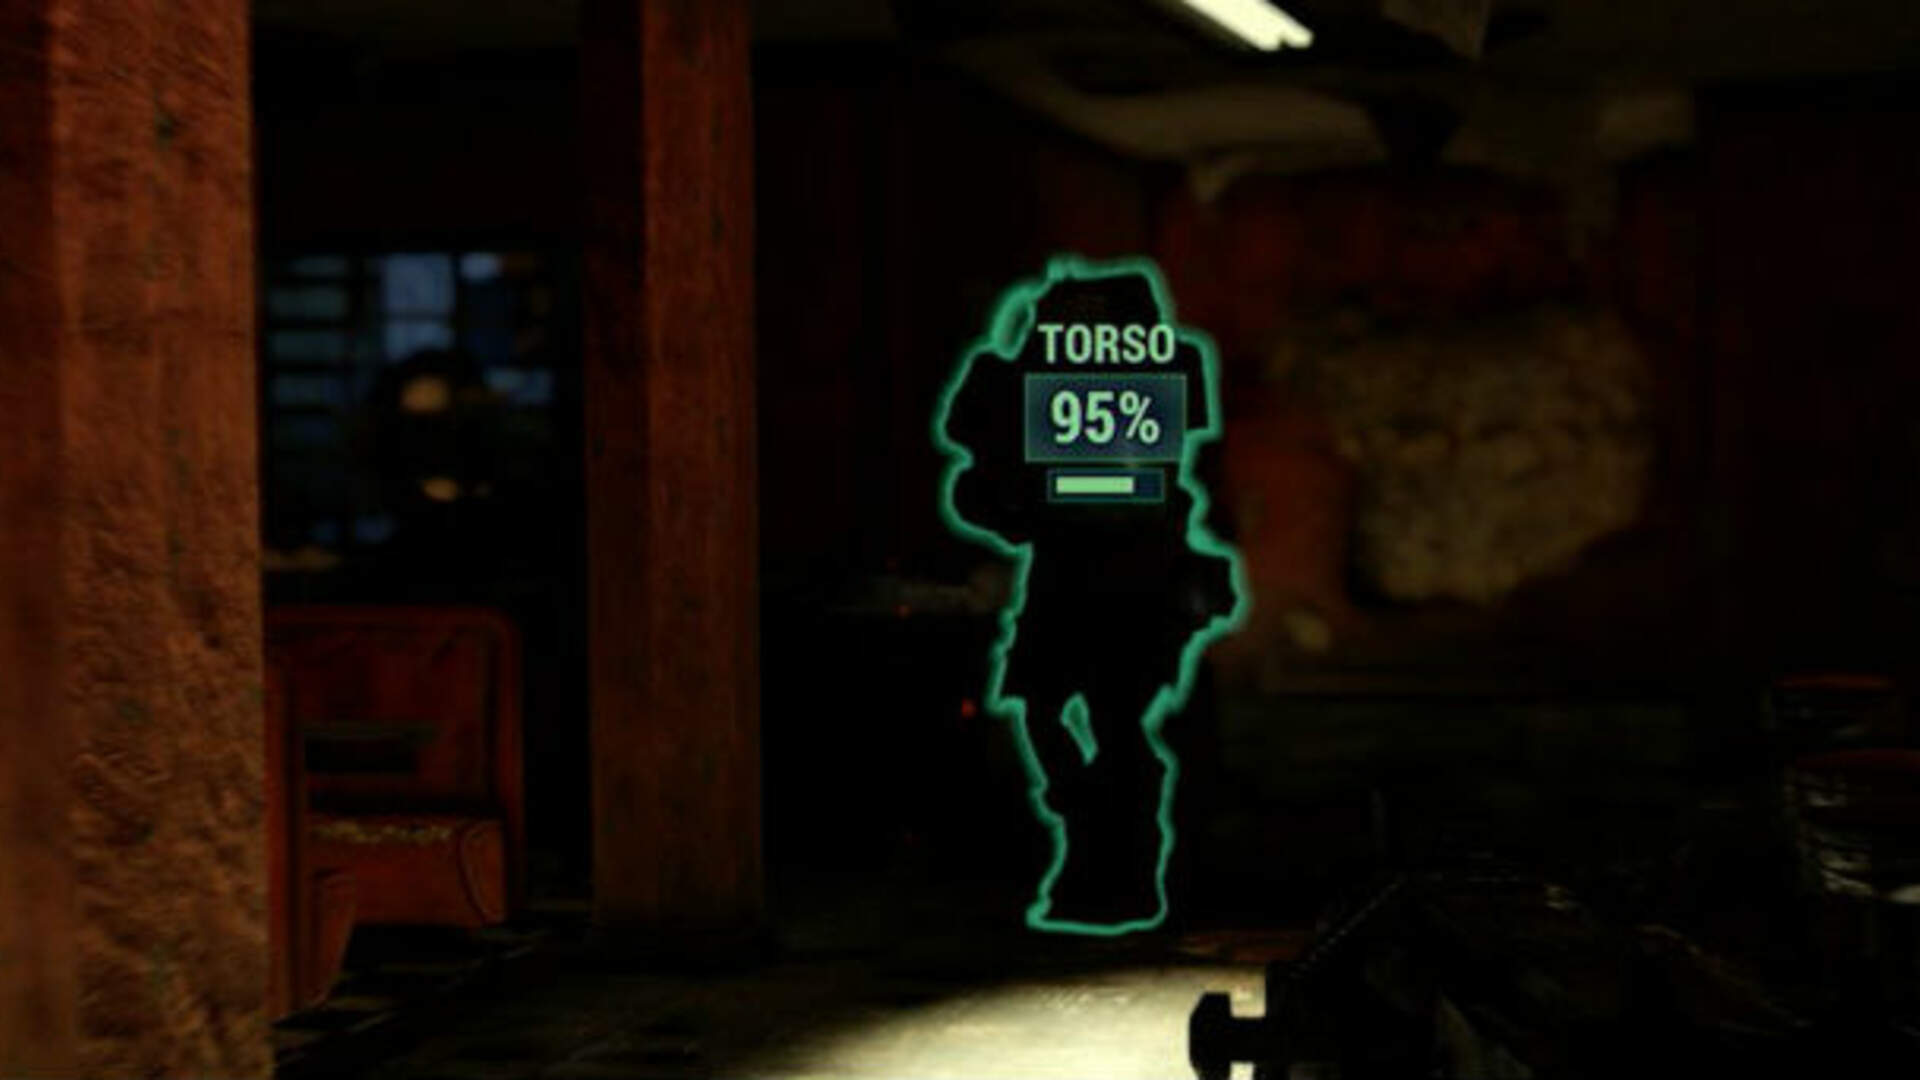 Fallout 76's Updated VATS System Takes Some Getting Used To